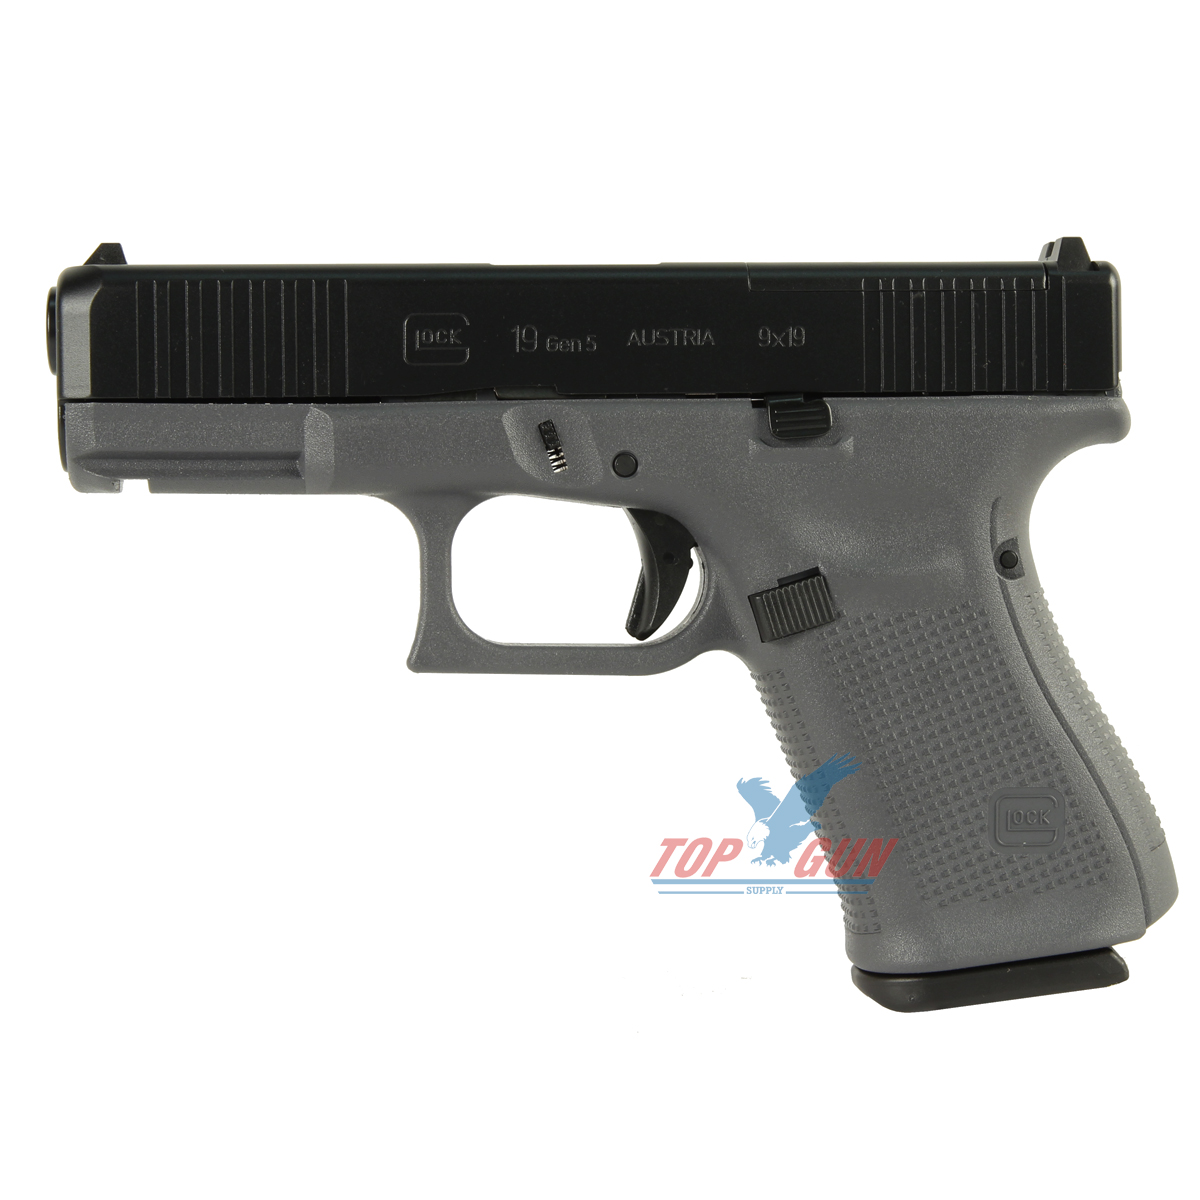 Glock 19 GEN 5 MOS 9mm - Gray 10RND